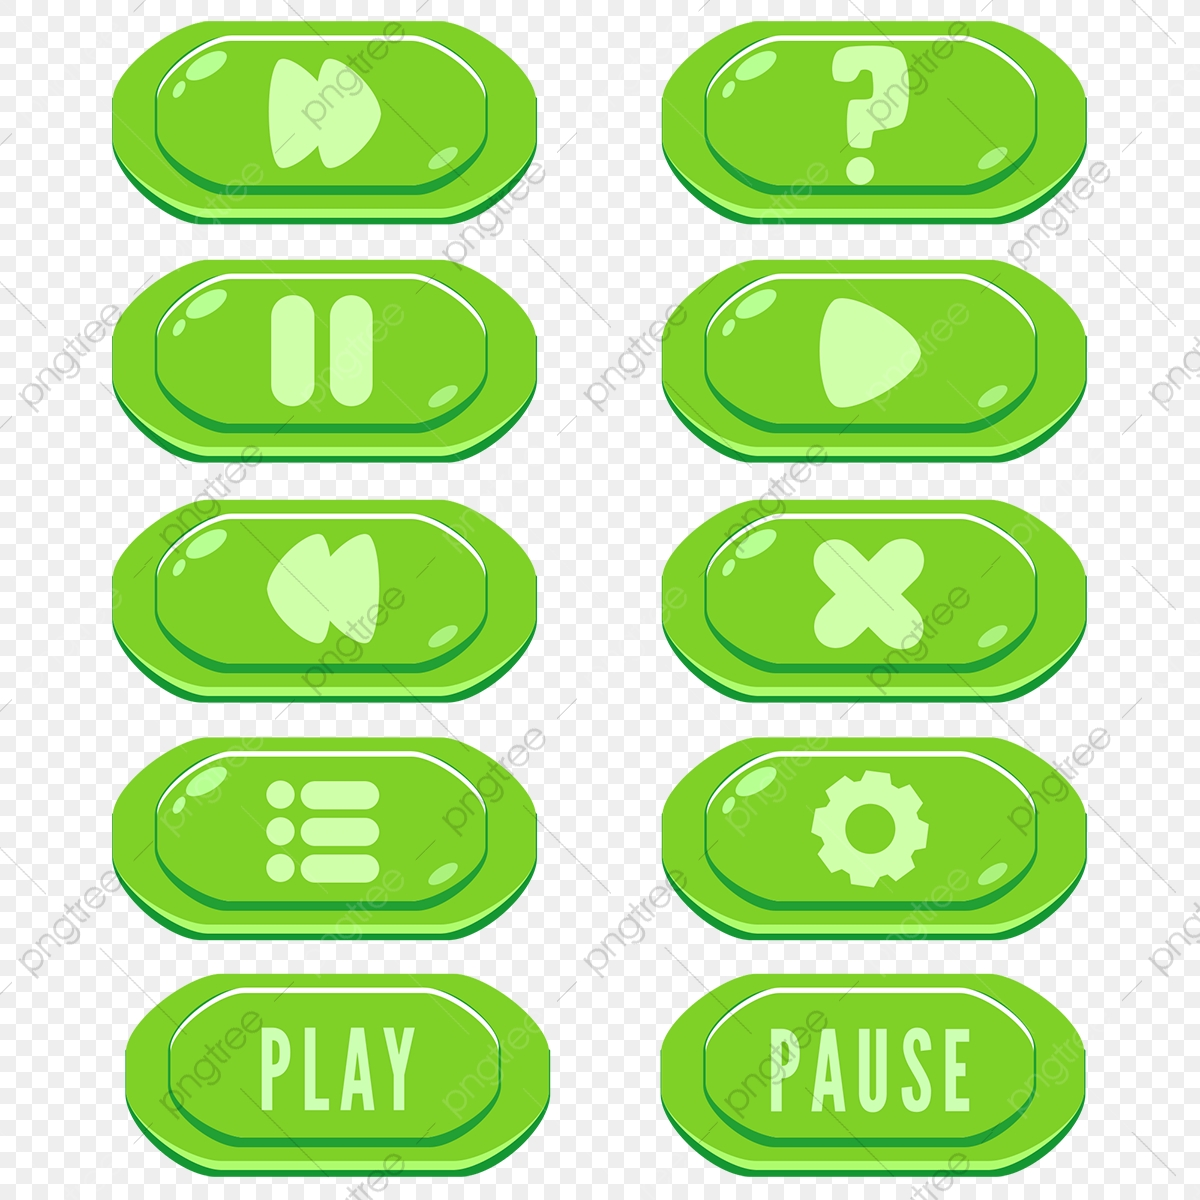 ui png images vector and psd files free download on pngtree https pngtree com freepng game buttons for development casual games ui kit 5004165 html